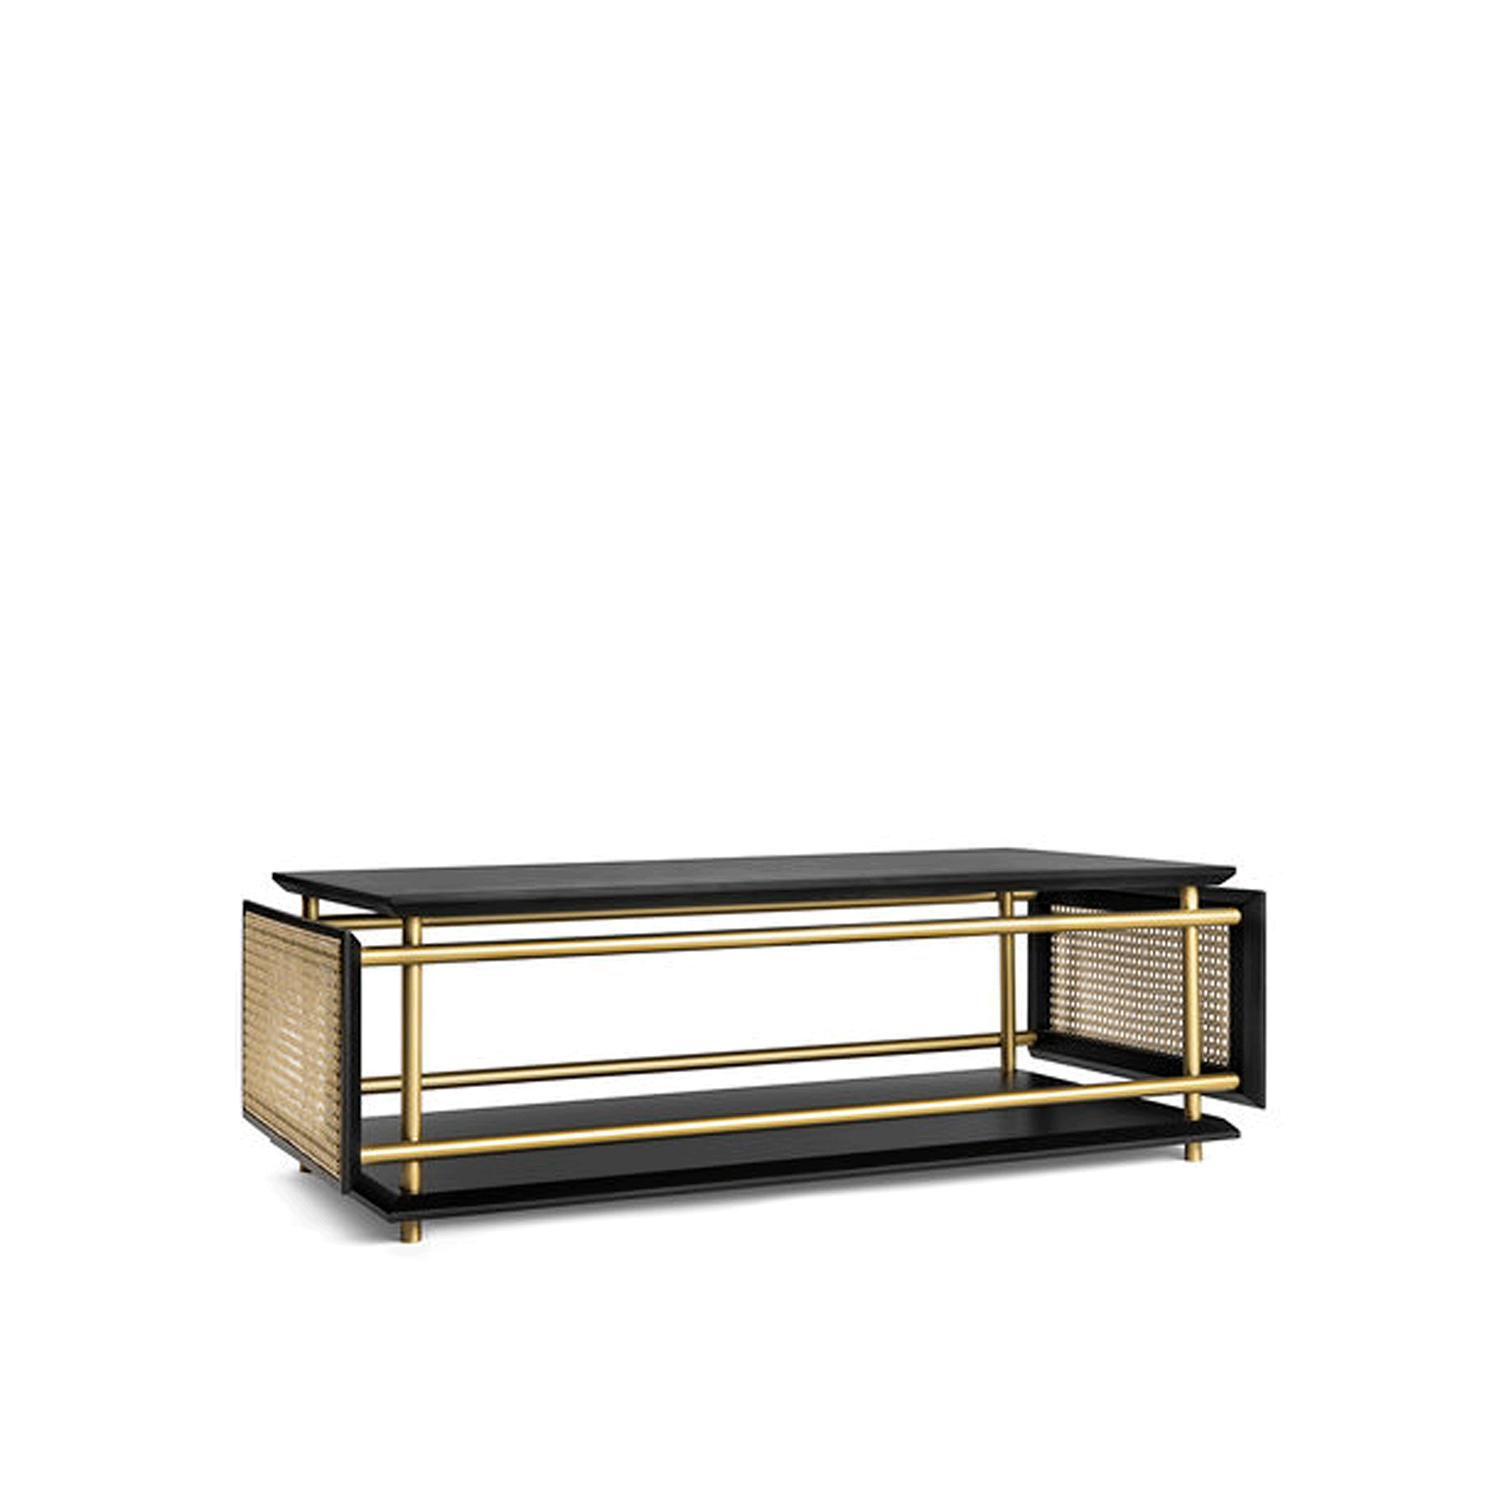 Wiener Box Coffee Table - This coffee table is part of the Wiener Box collection, comprising tables distinctive for their combination of modern elements, traditional materials, and a bold design. The sides of the piece are covered with Viennese straw, synonymous of the Viennese bentwood style, while the structure mixes the essential lines of the metal structure with a frame of wood and enamel-finished top.